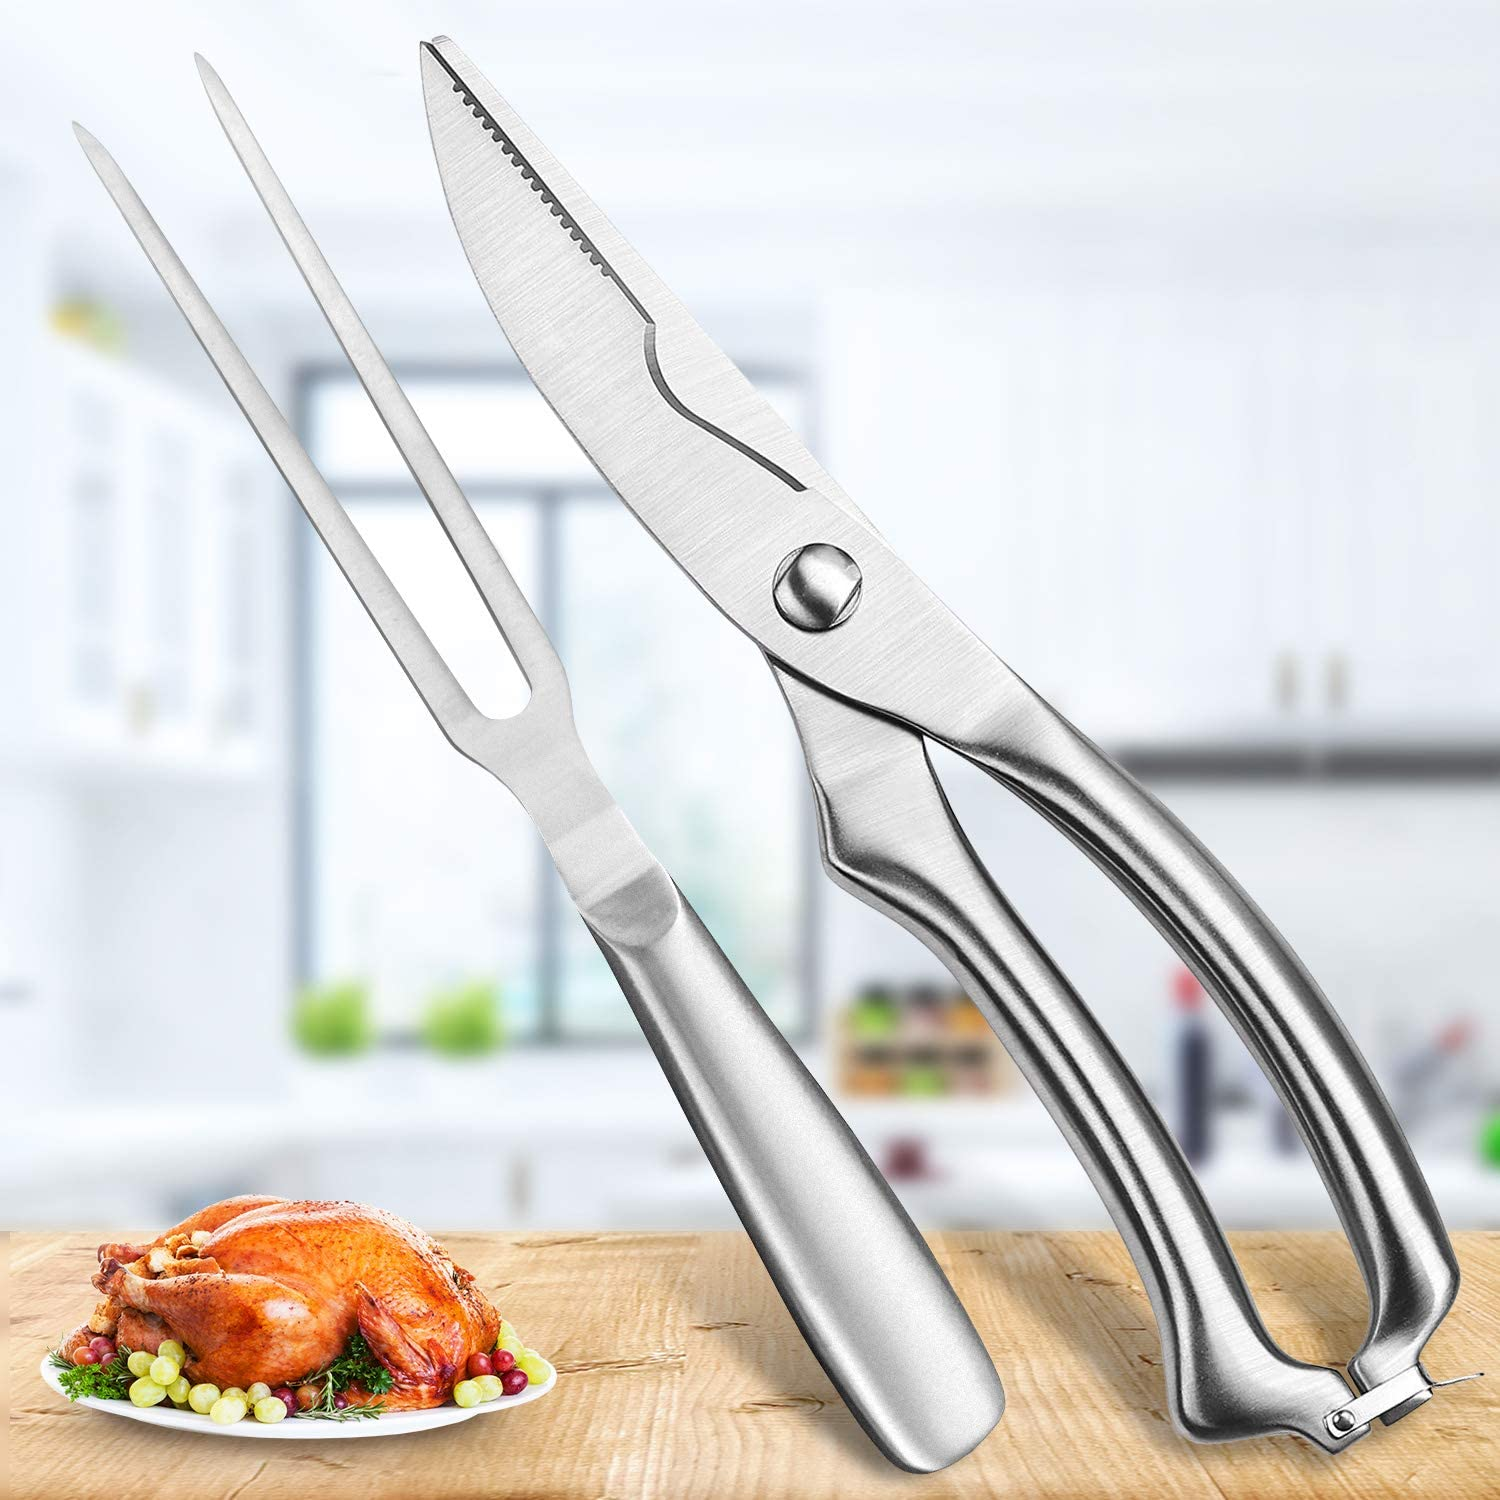 Heavy Duty Stainless Steel Poultry Shears, Premium Ultra Sharp Spring-Loaded Kitchen Food Scissors For Bone, Chicken, Meat, Fish, Seafood.BBQ Fork for Multiple Use(Silver)